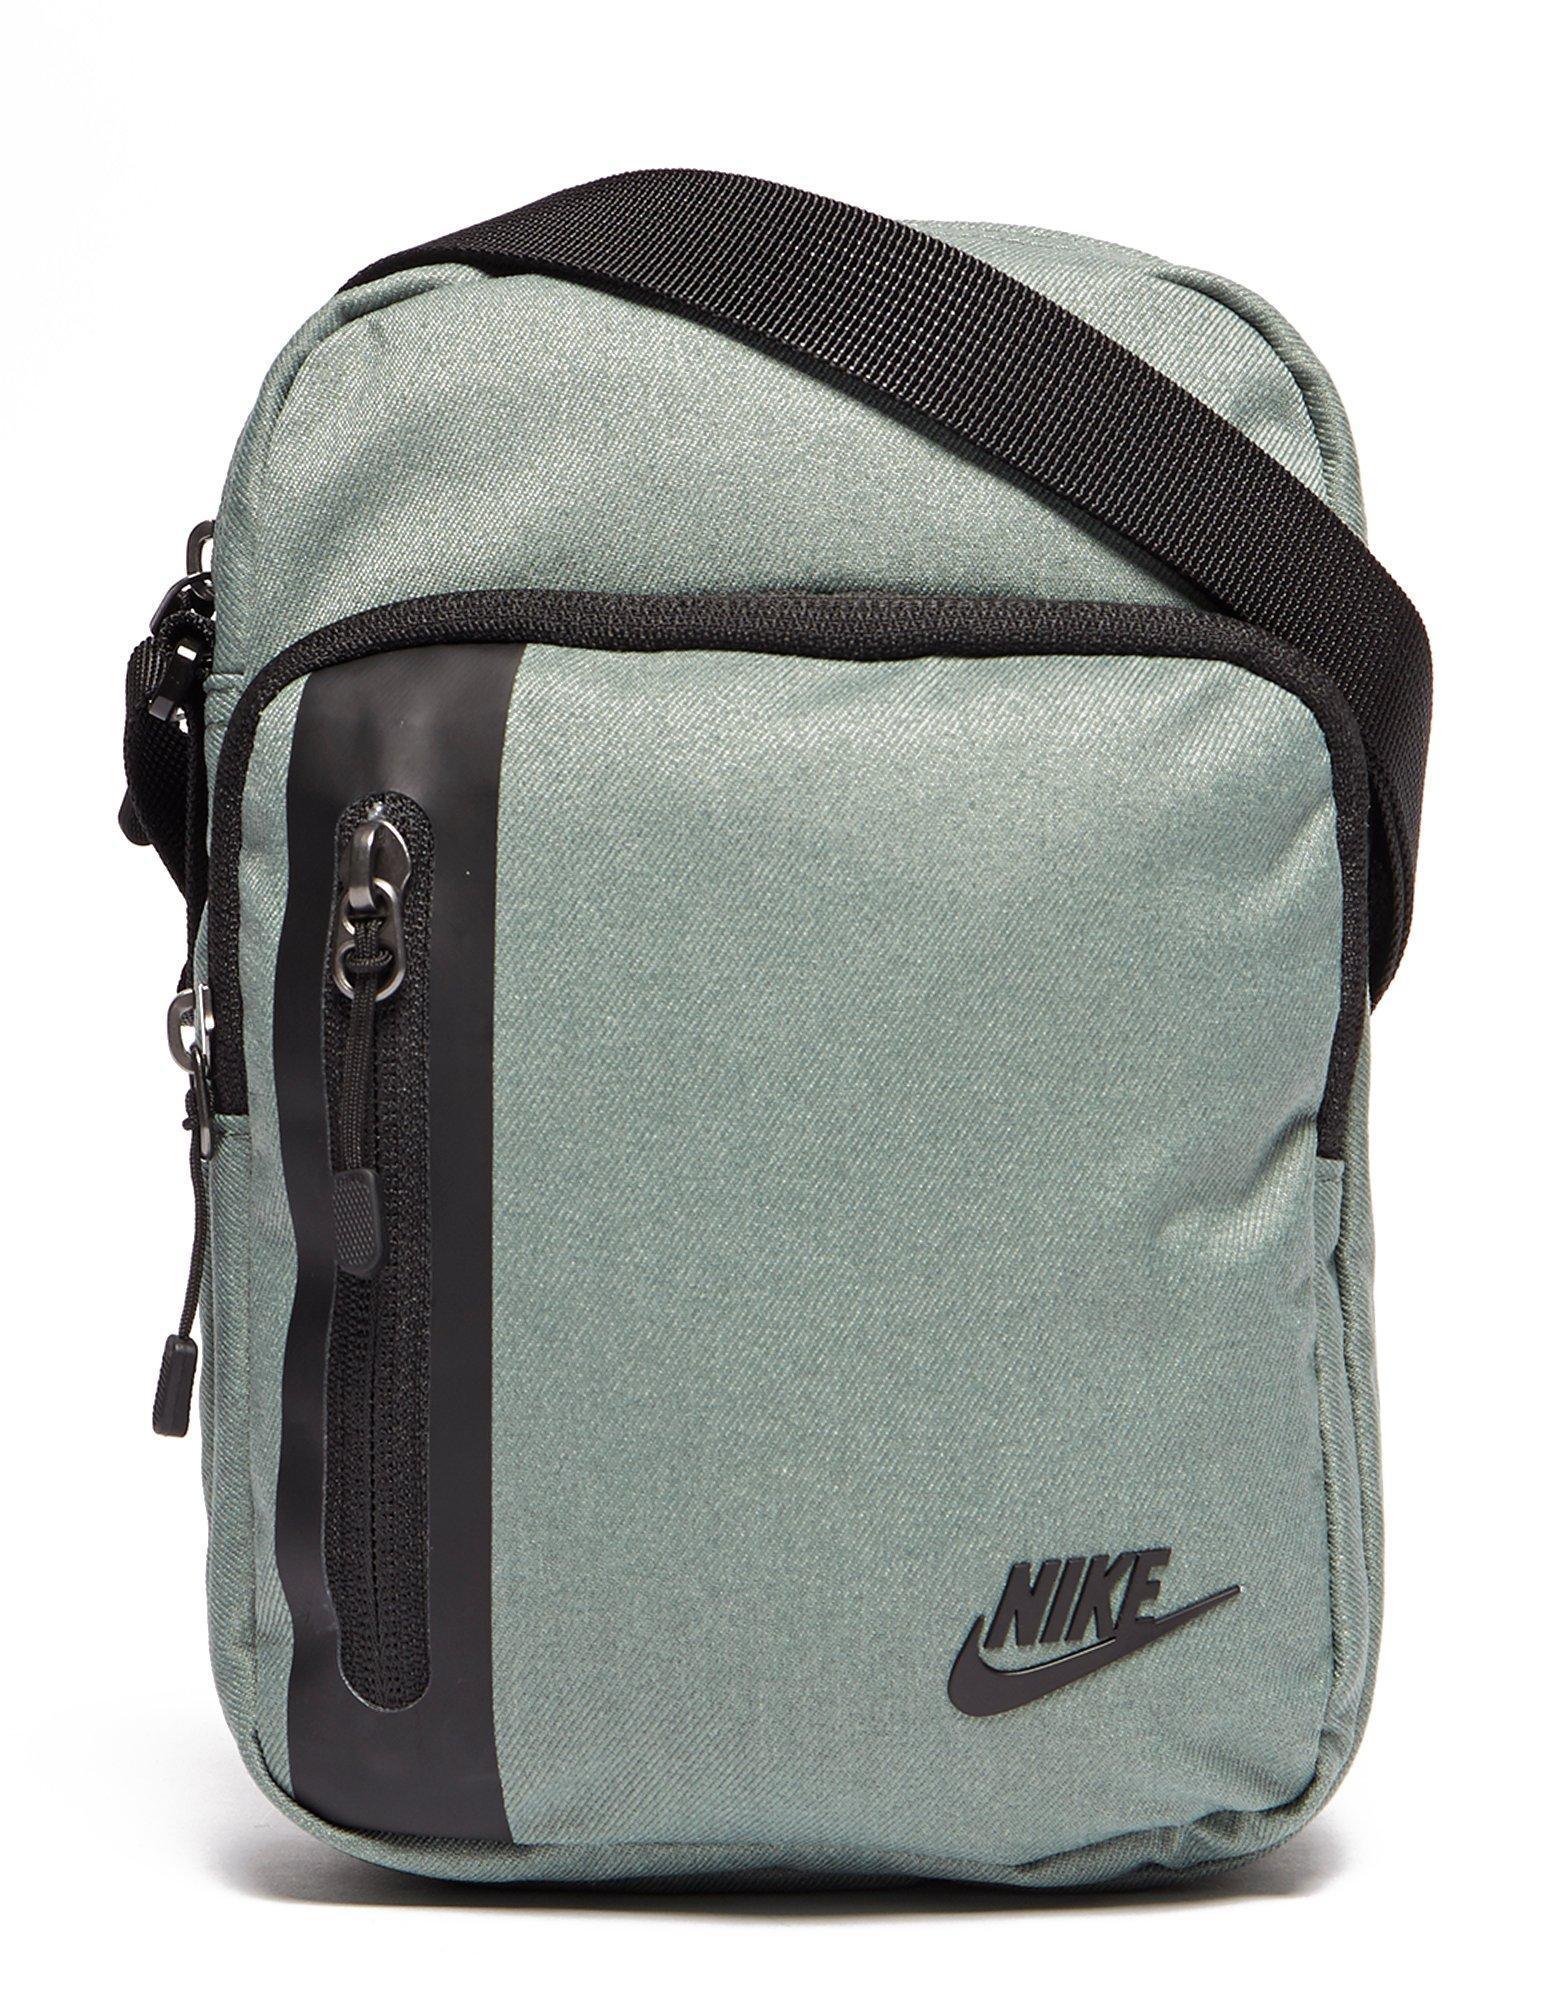 Sports Direct Nike Small Items Bag   ReGreen Springfield 816a84acb8